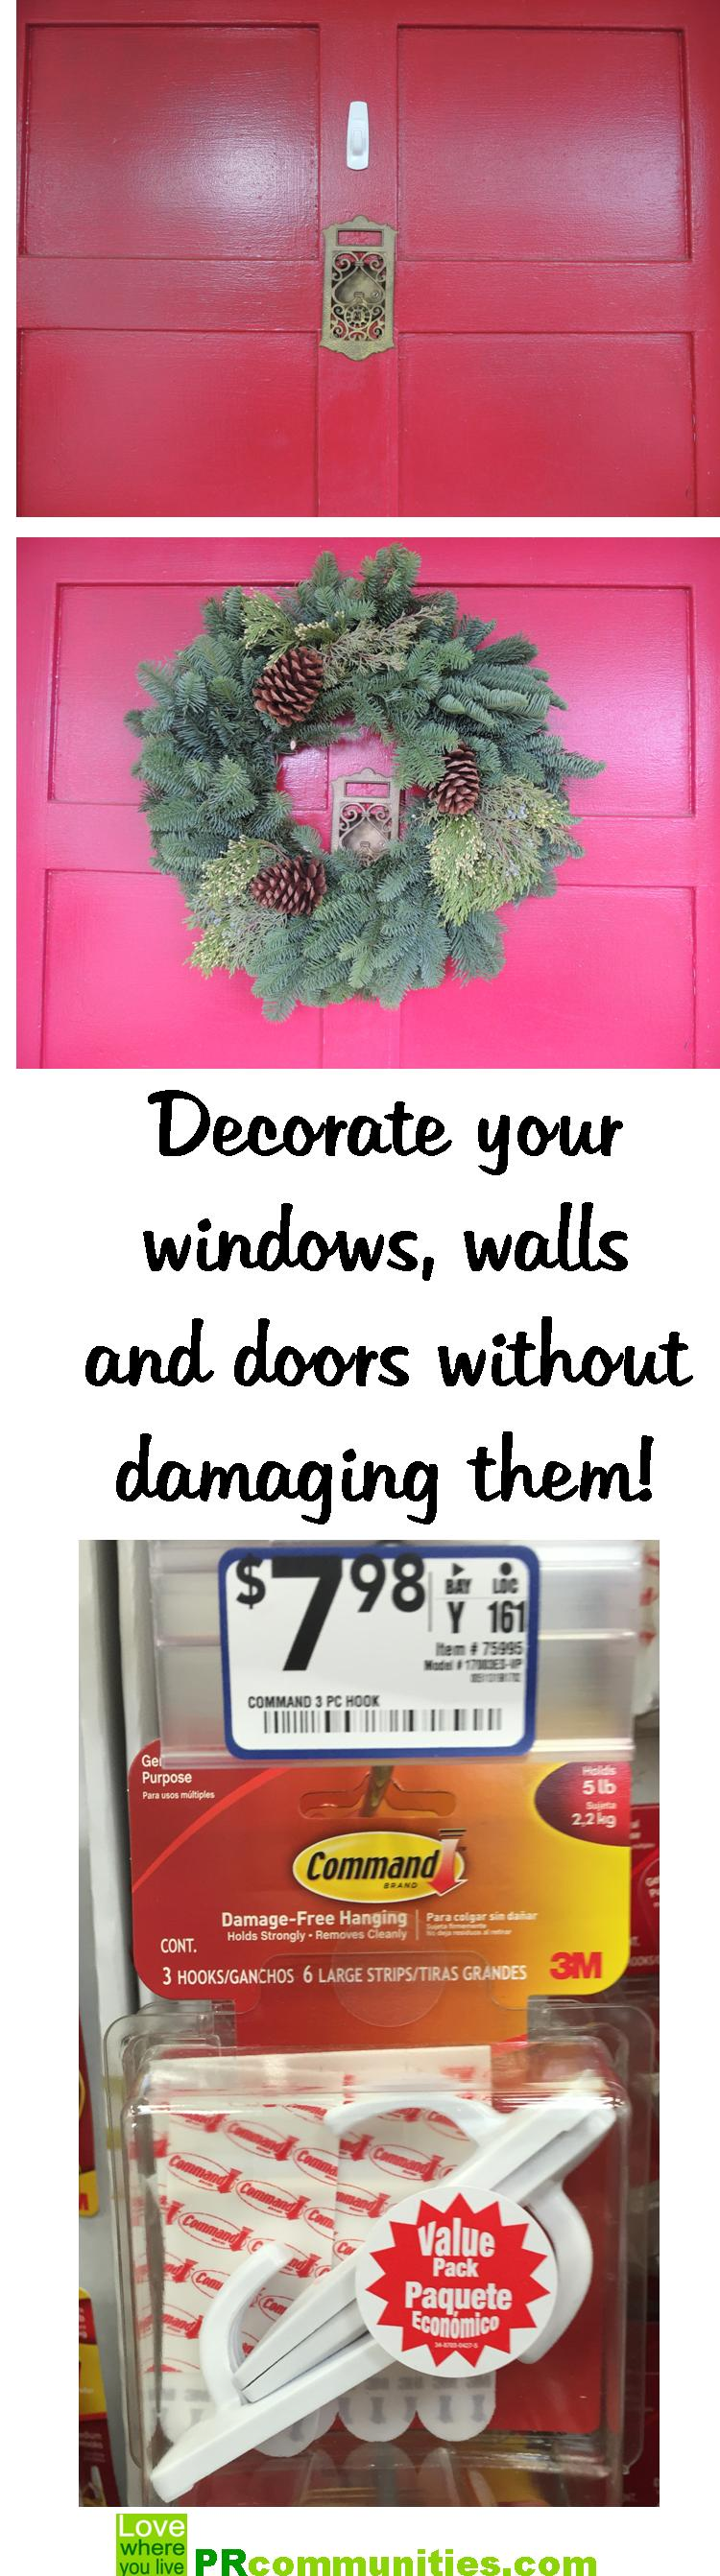 Decorate your windows walls and doors without damage